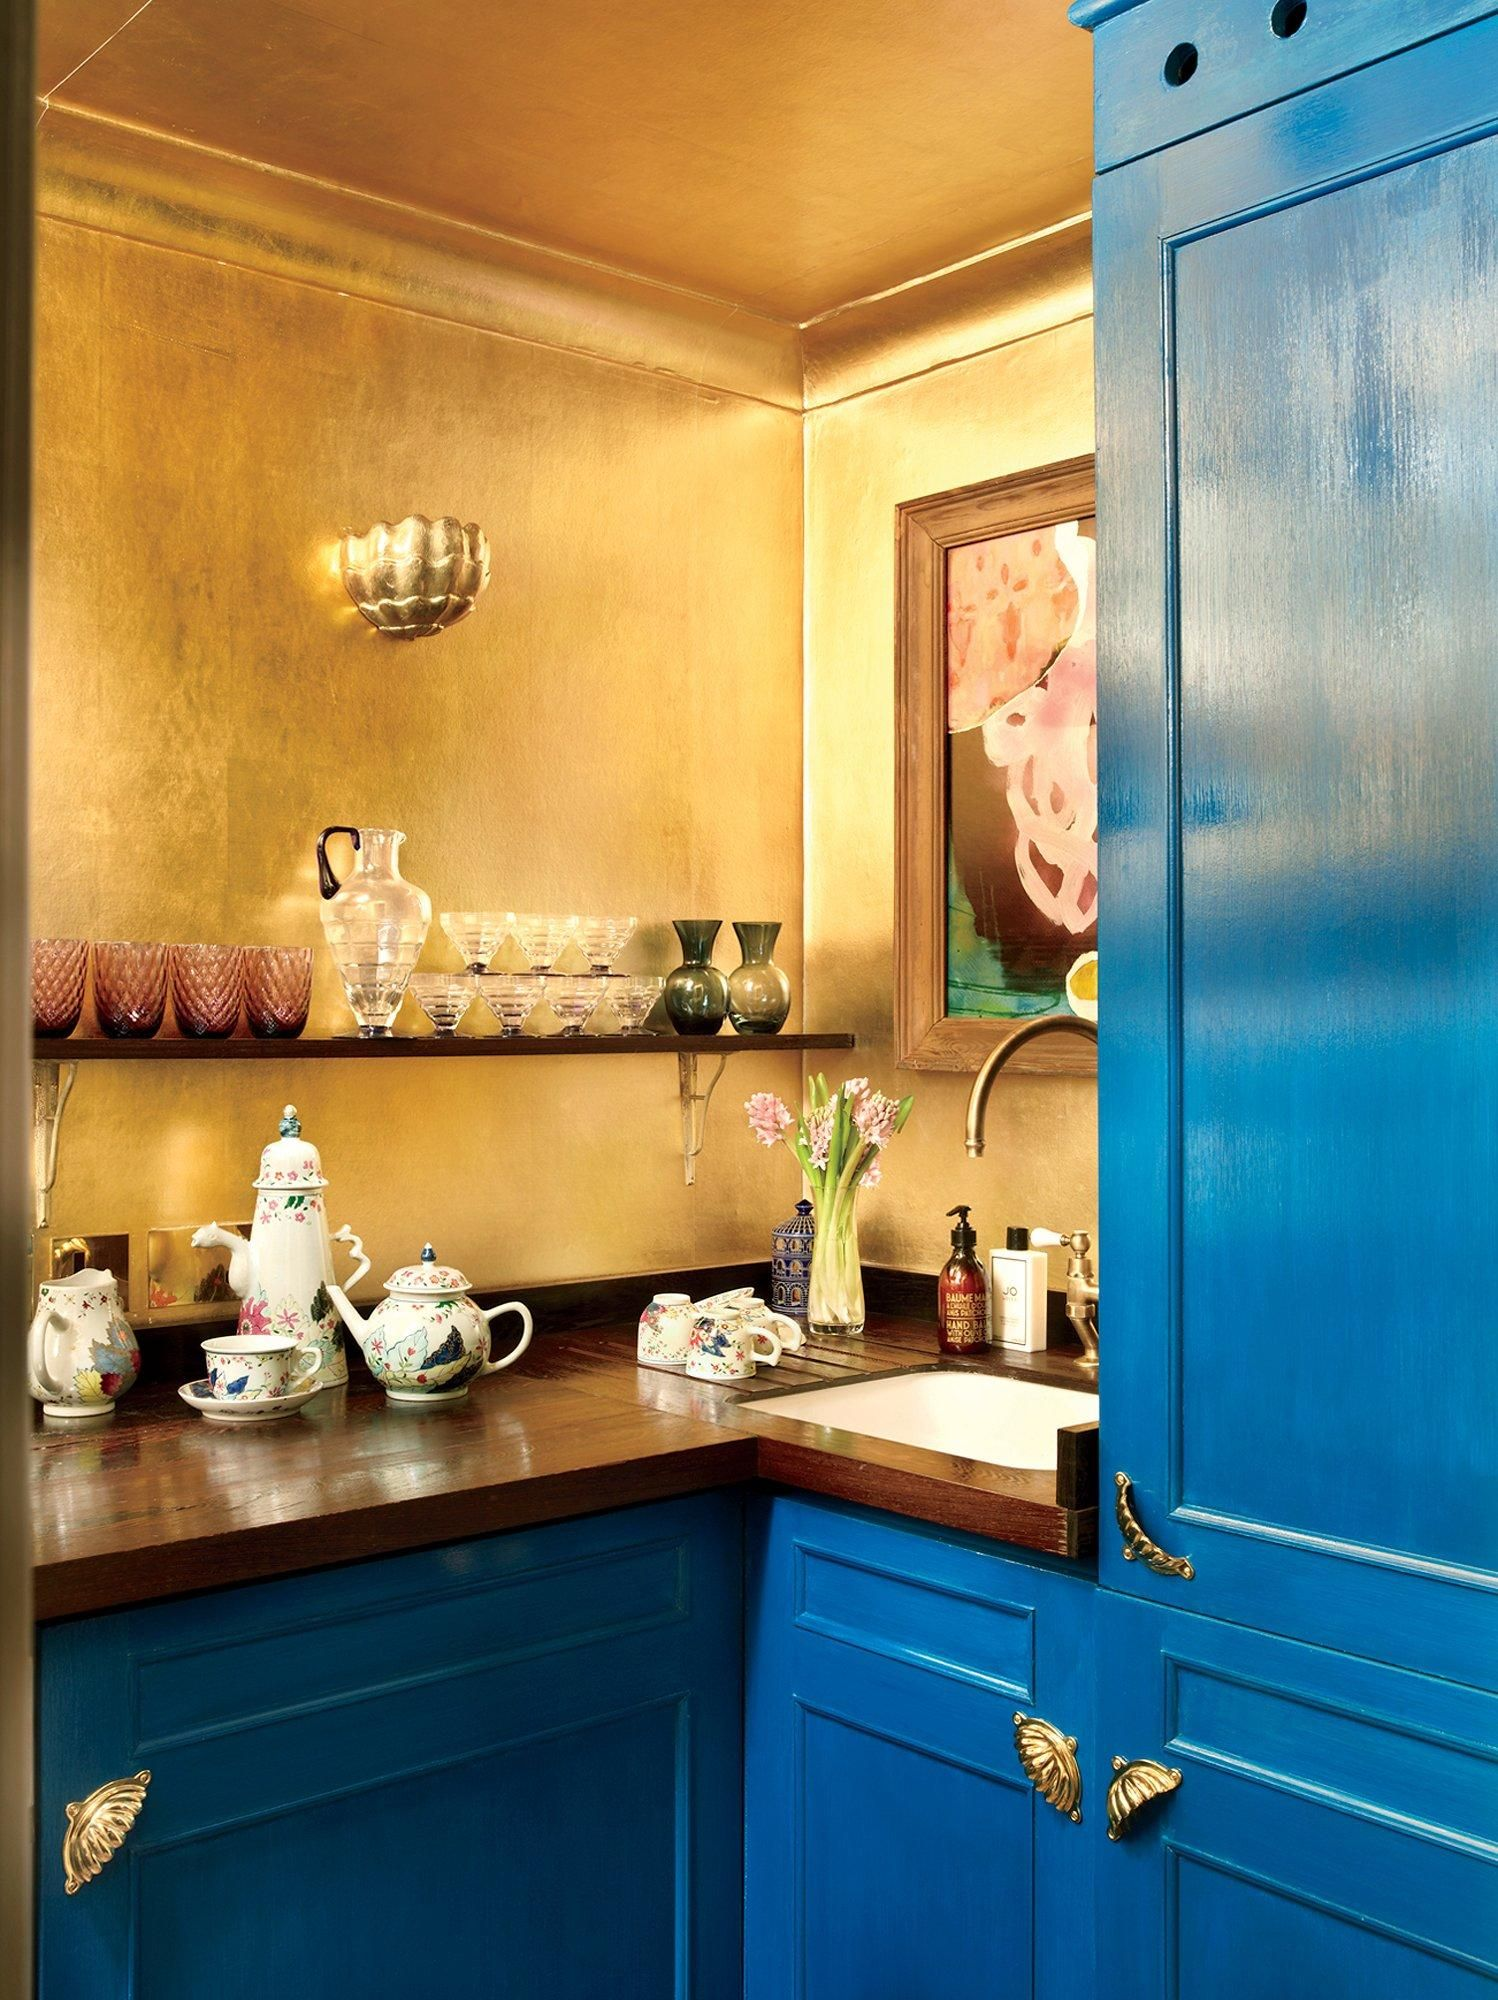 Best Kitchens Photographed In Vogue Beautiful Kitchens Gold Painted Walls Cool Kitchens